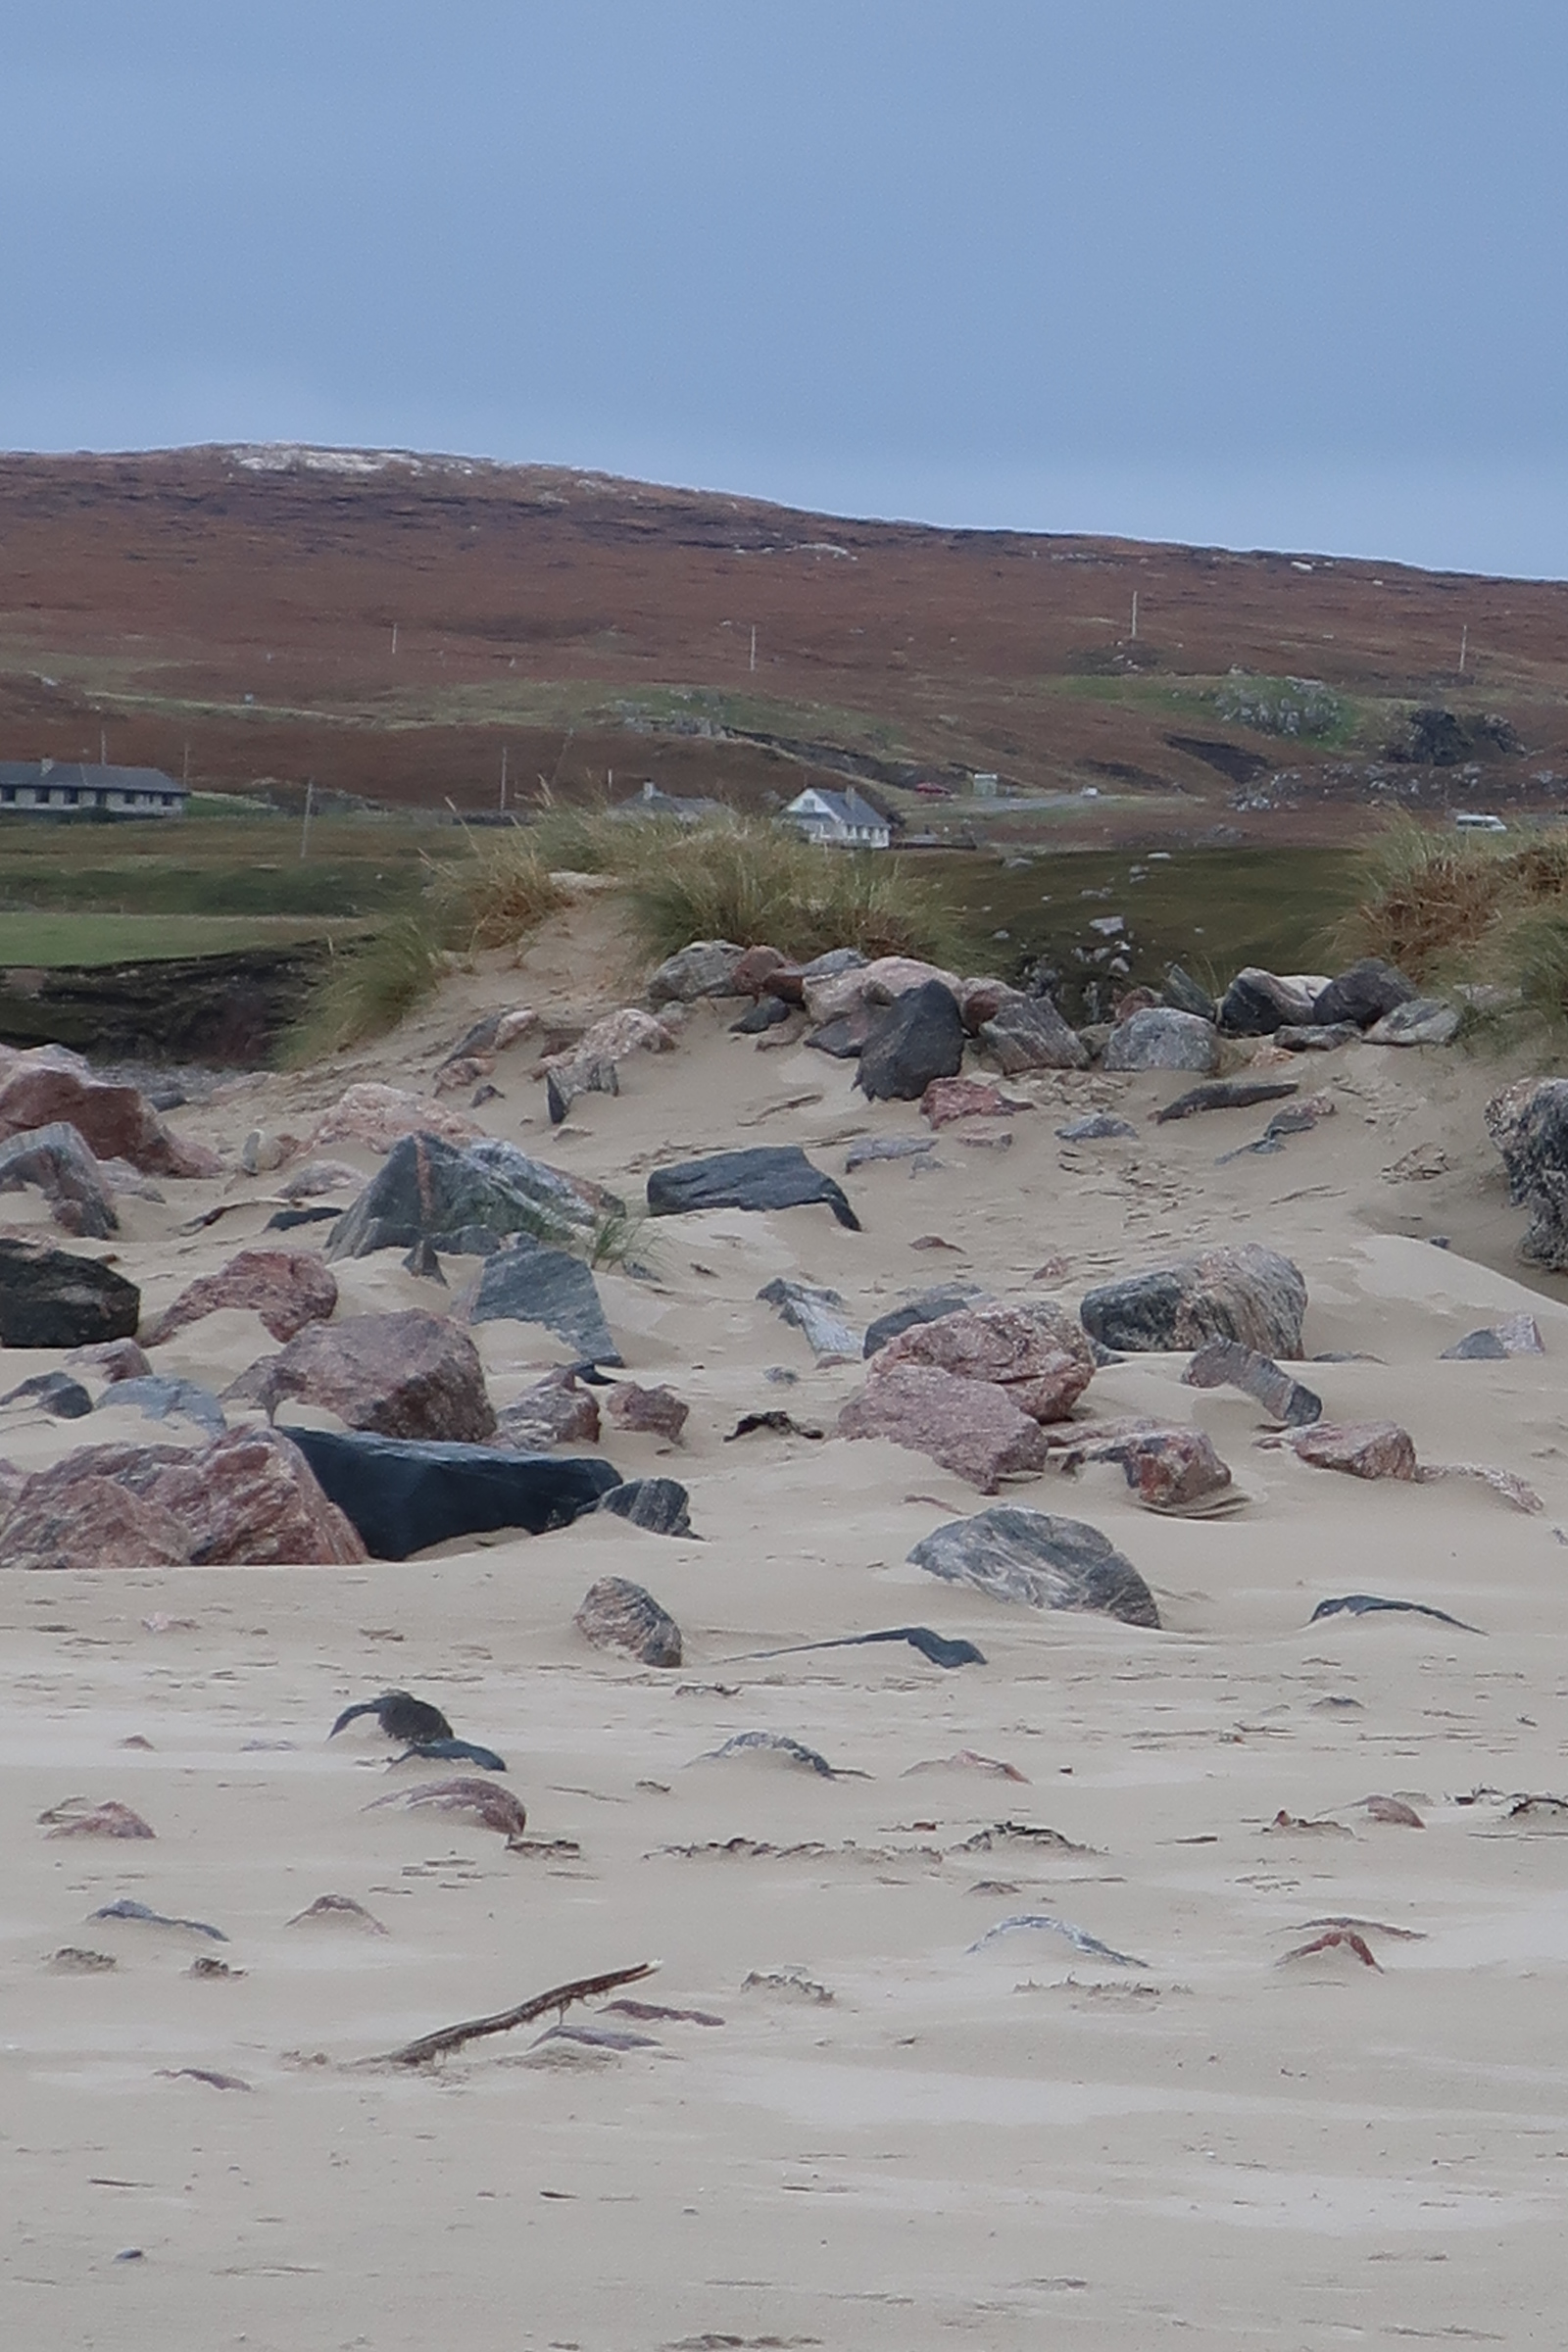 View from the beach in Uig